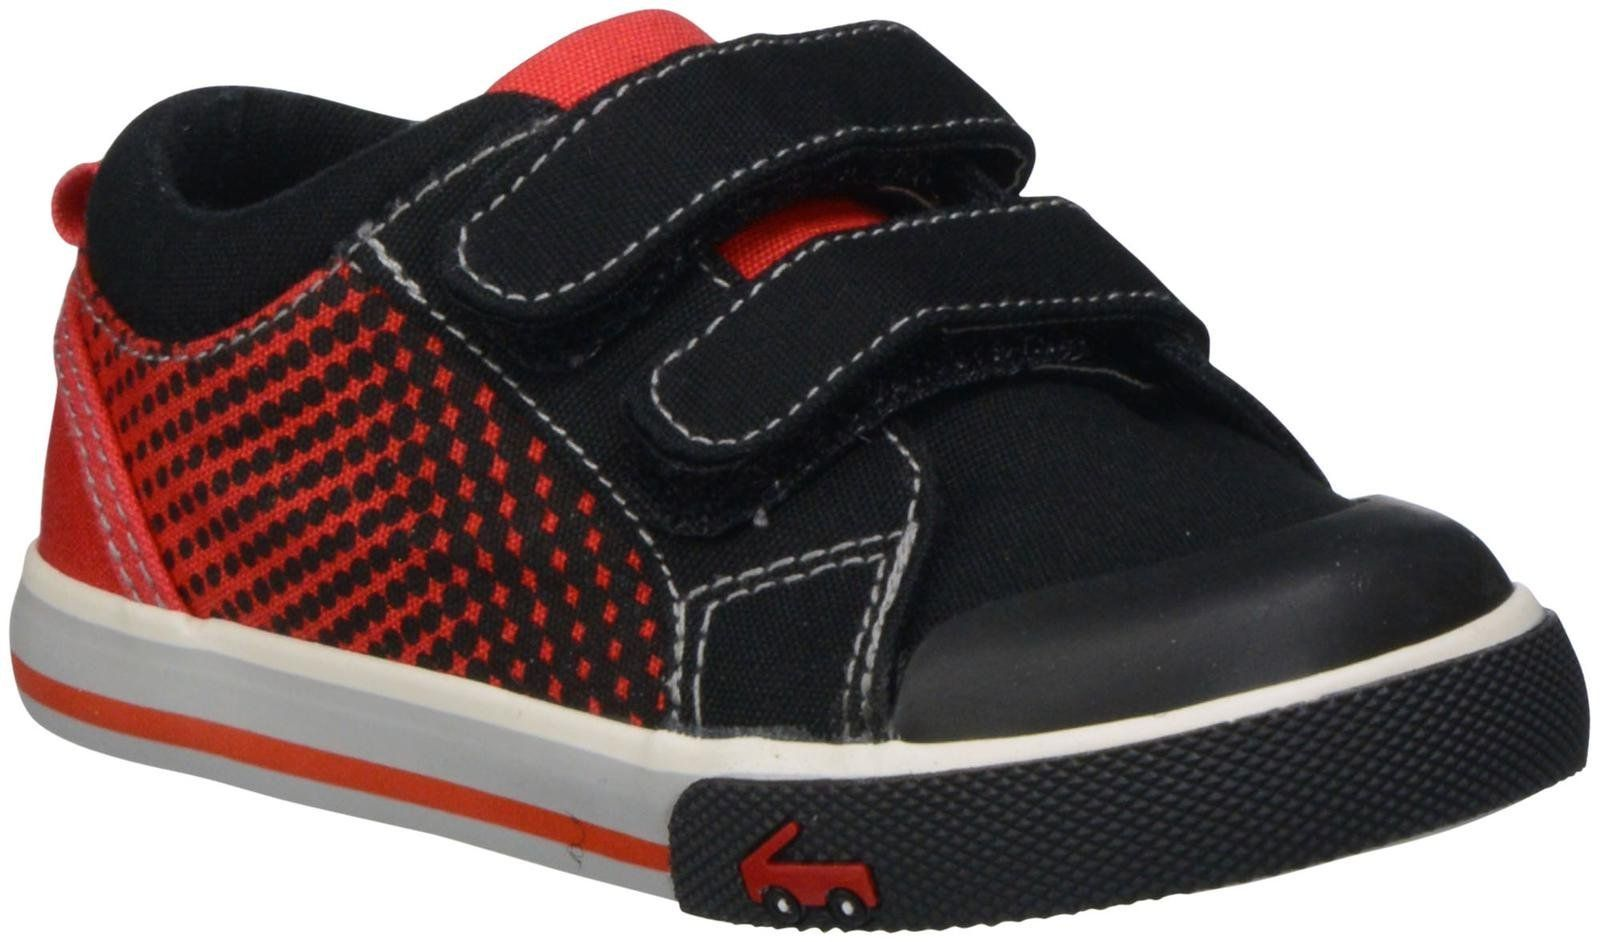 See Kai Run Hiroto Sneaker (Toddler), Black, 5 M US Toddler. Breathable canvas lining. Flexible sole. Adjustable hook and loop closure. Removable leather insole. Rubber toe-cap.